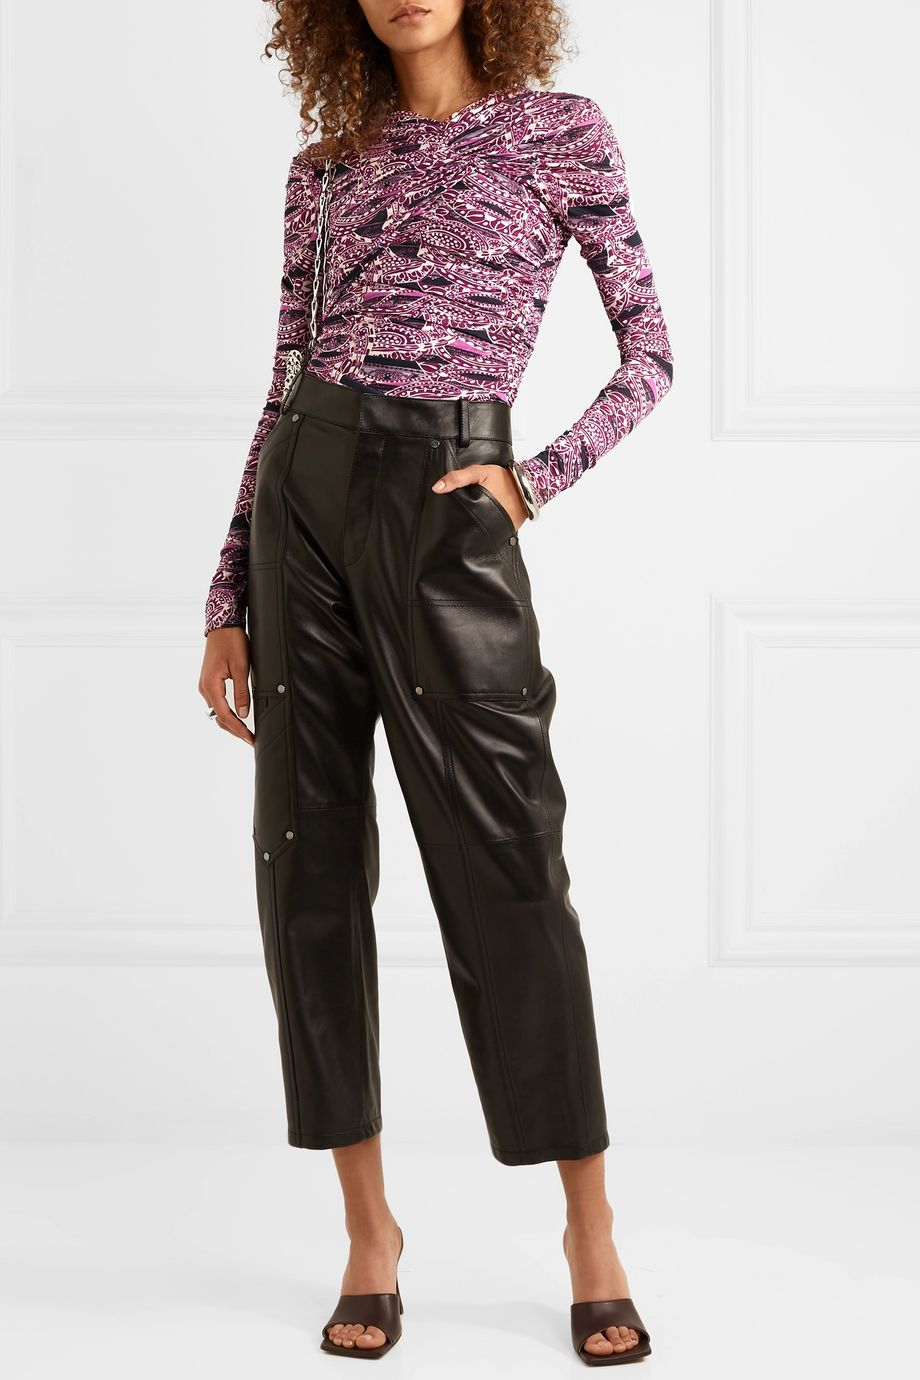 Isabel Marant Jany ruched printed stretch-jersey top